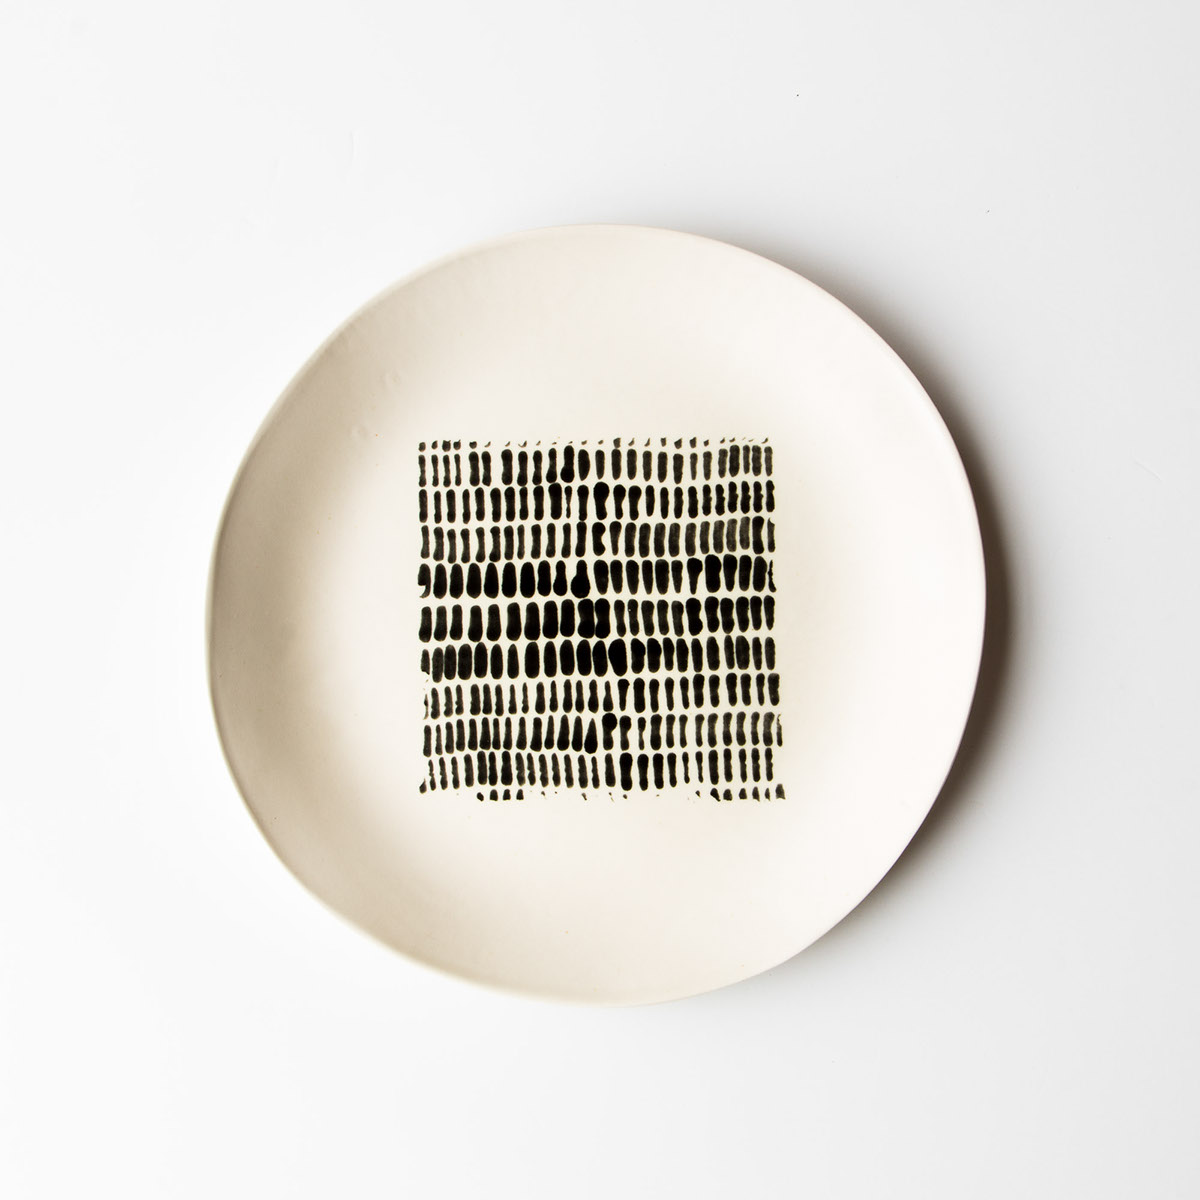 These plates look Japanese inspired almost zen with their paintings of black and white calligraphic lines. Designed by hand from white porcelain plates ... & Rachel Grenon - Large Hand Painted Ceramic Plates on Behance